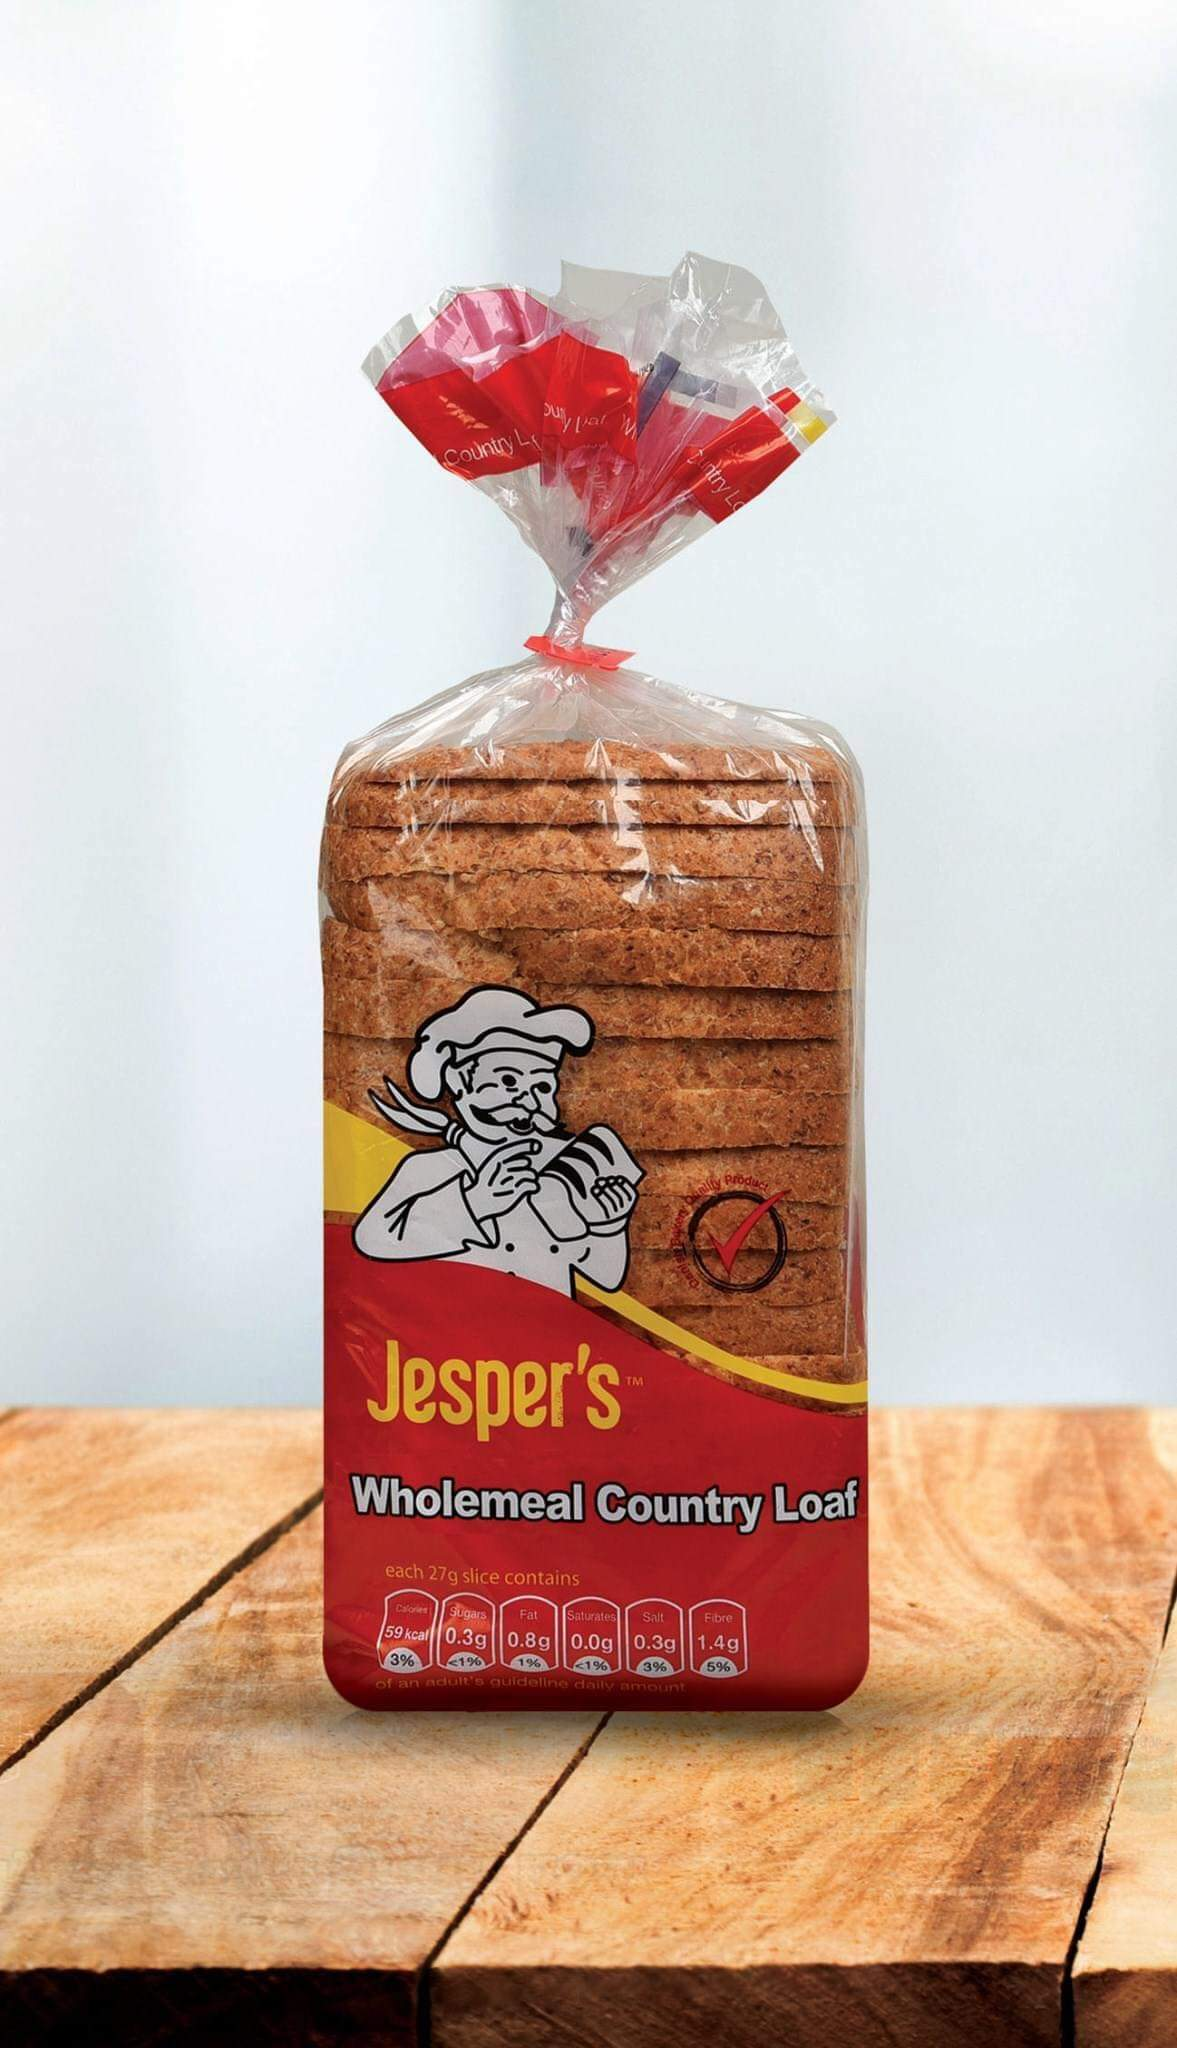 Jespers wholemeal country loaf